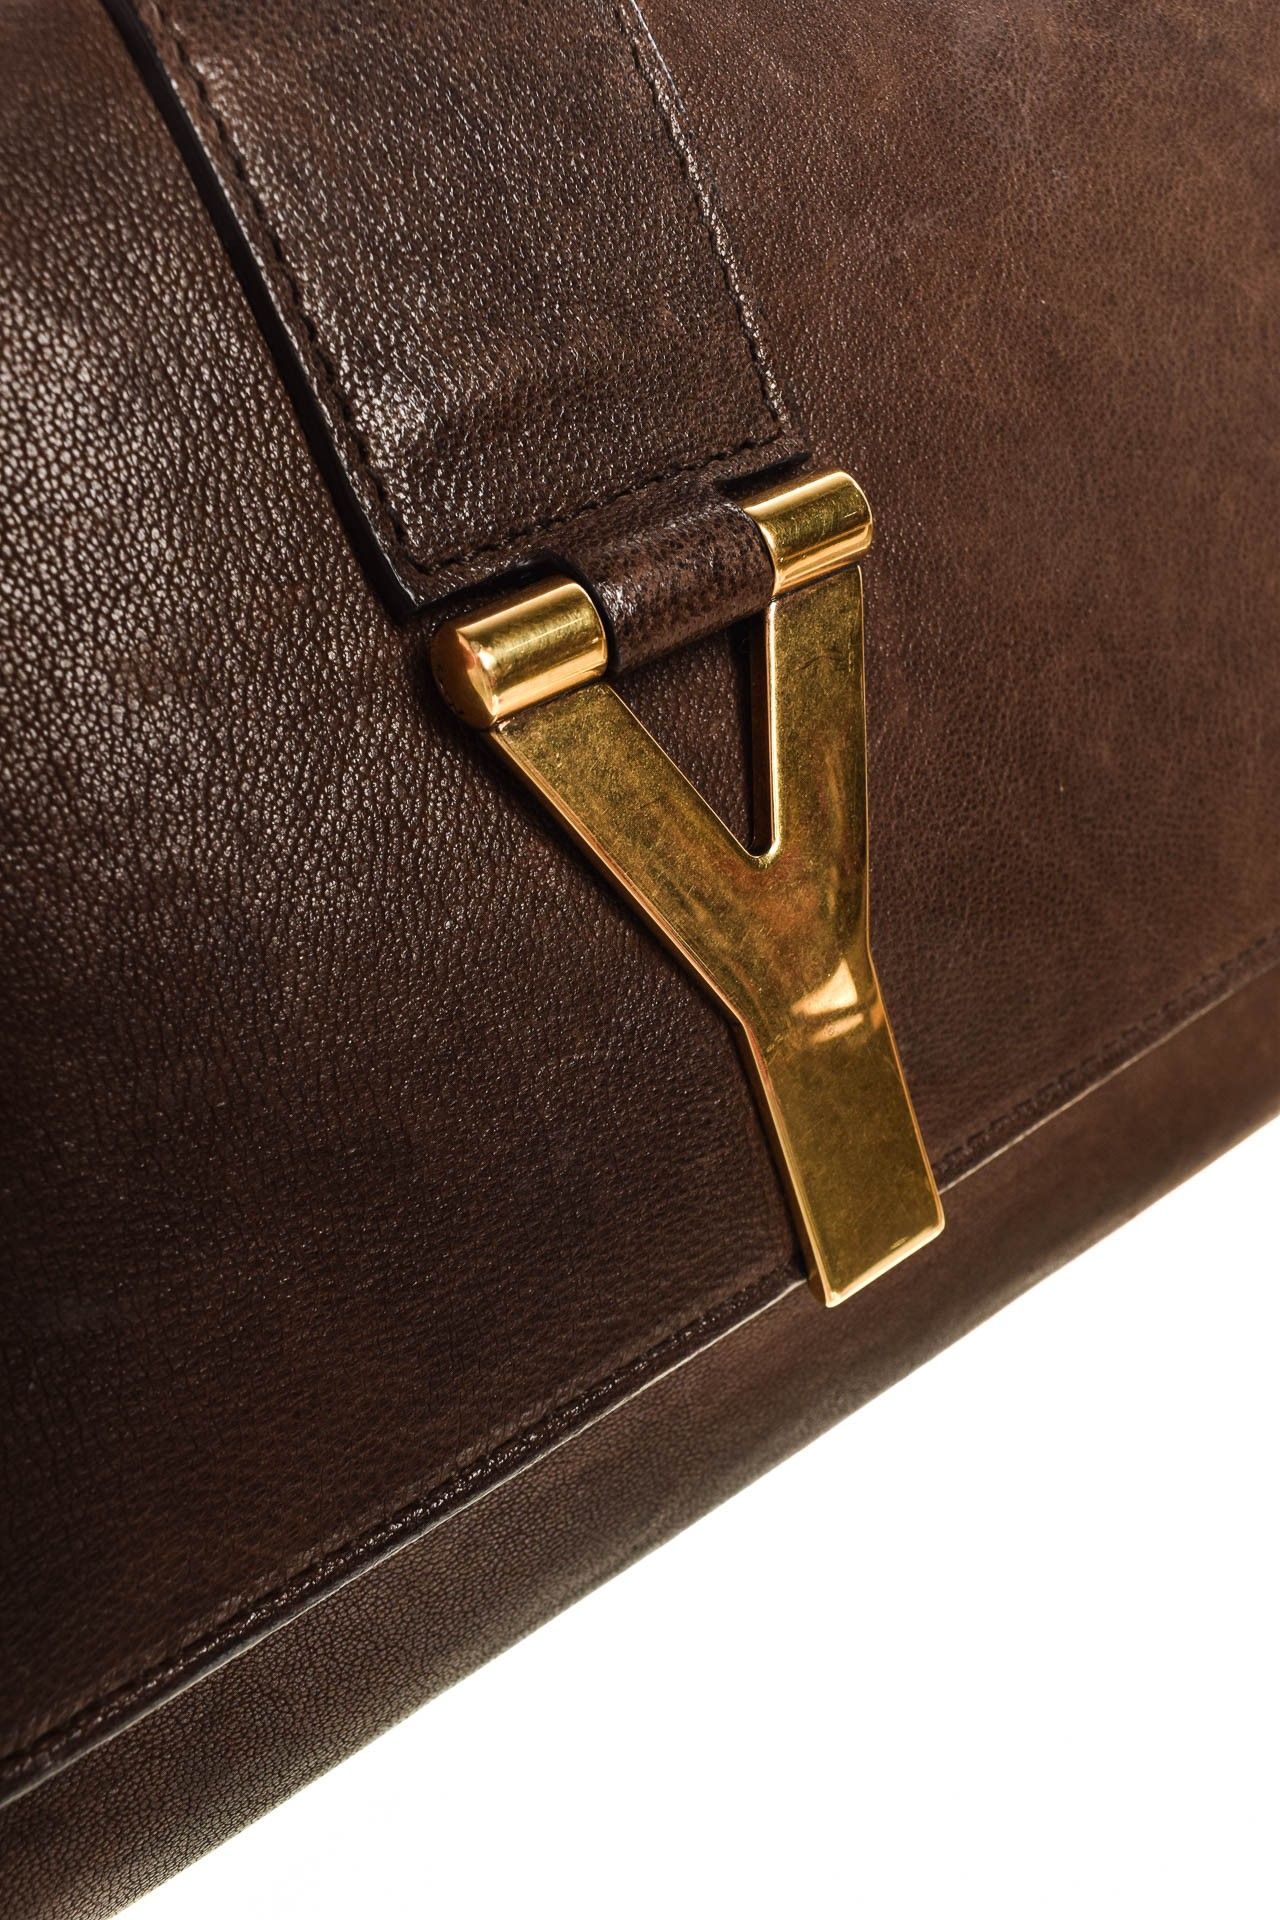 Yves Saint Laurent - Clutch Marrom Logo - Foto 5